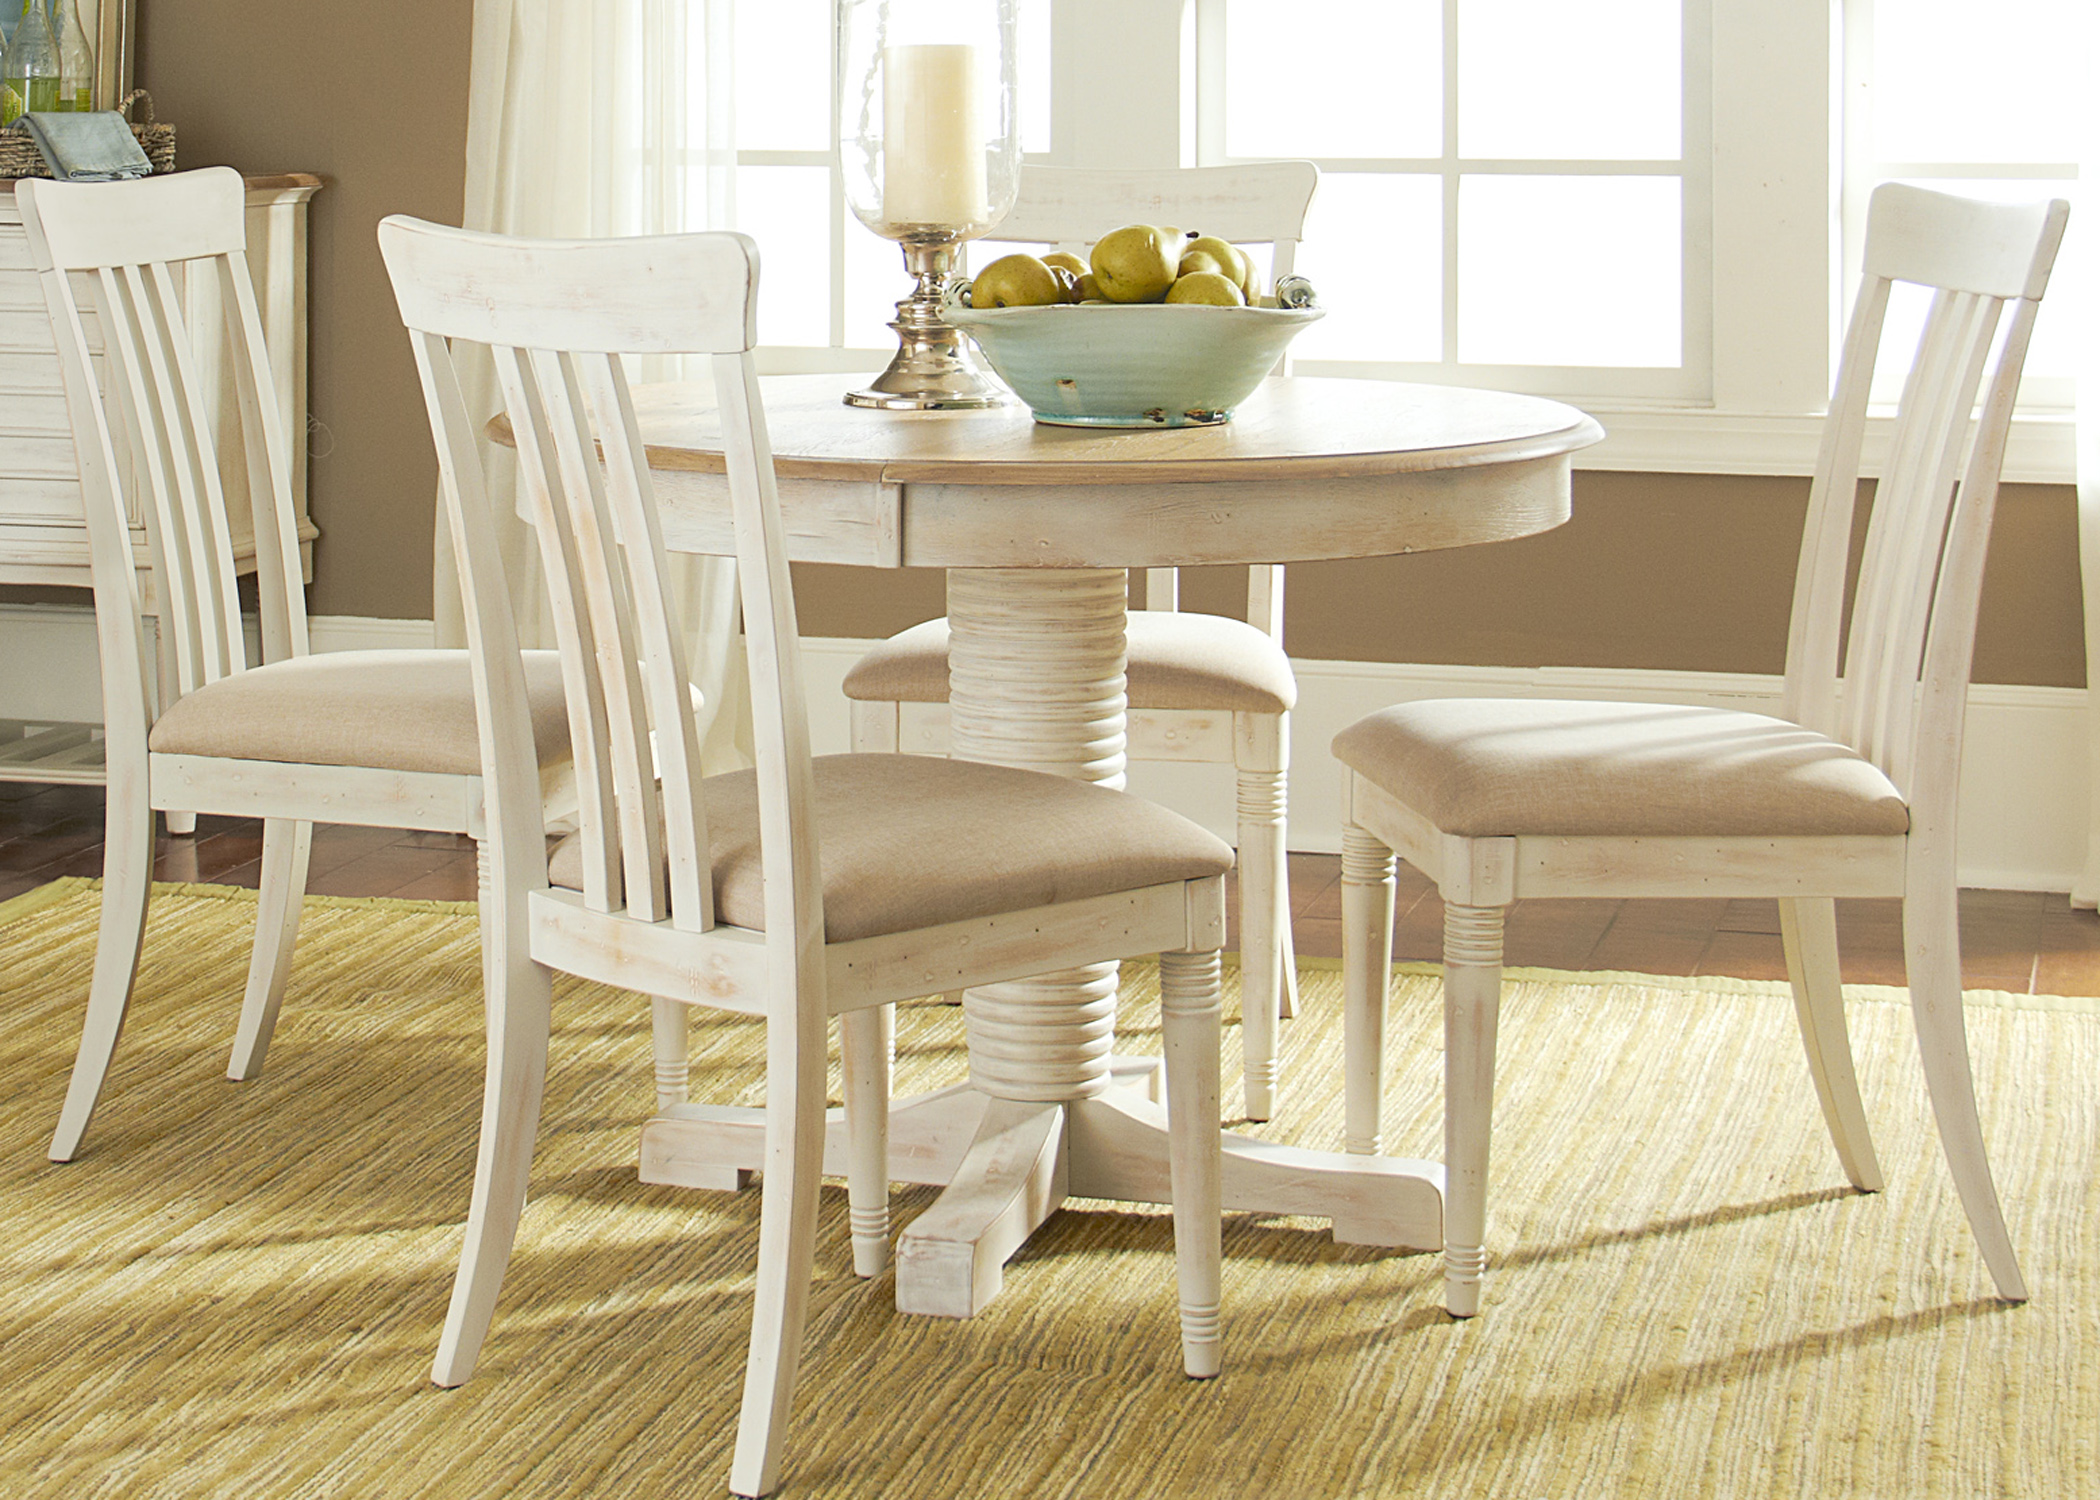 Liberty Furniture Point West 5 Piece Oval Table Set  - Item Number: 568-CD-5OTS